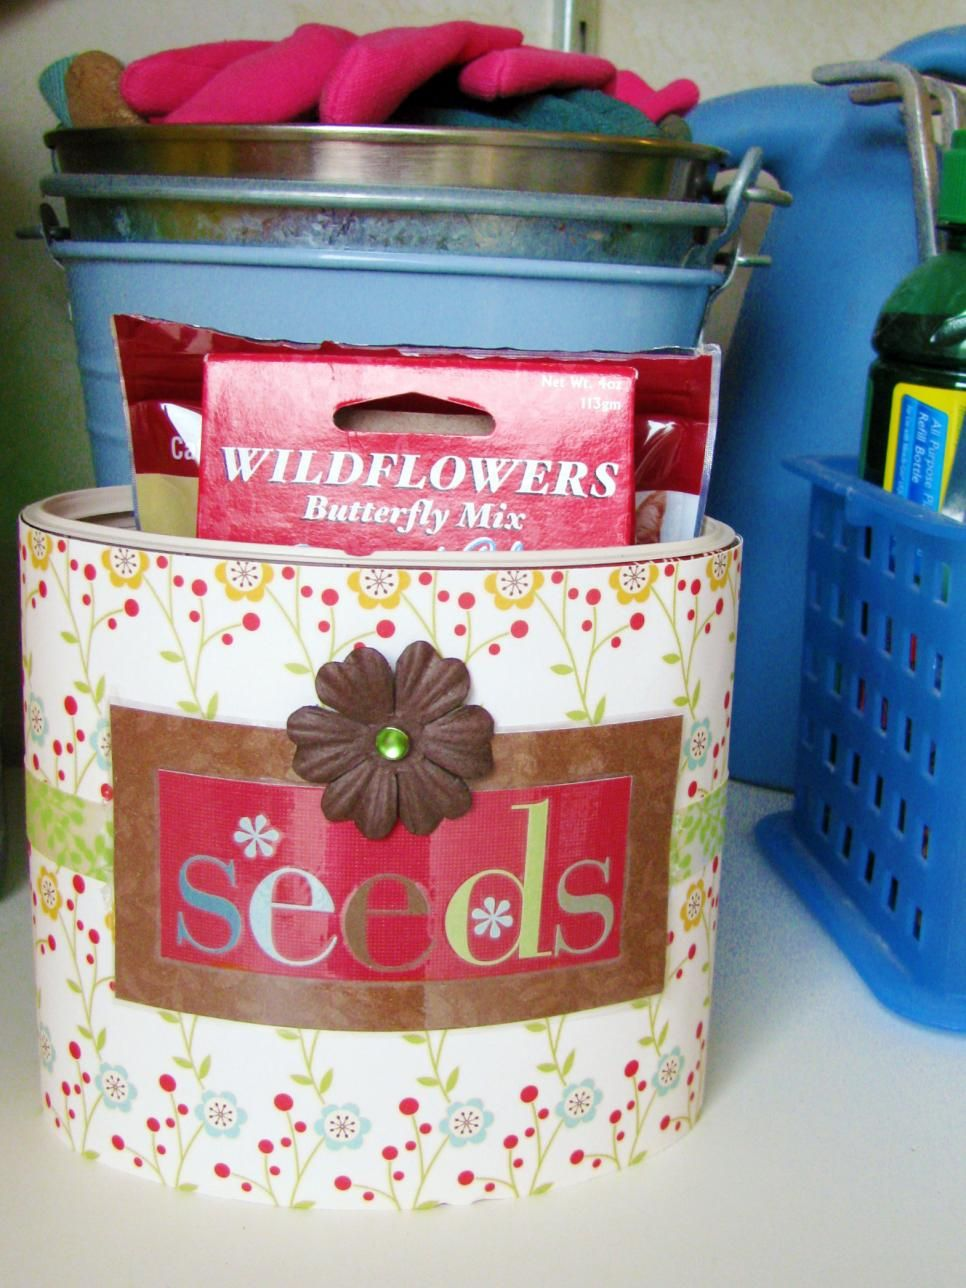 30 great ideas for upcycled storage hgtv seed storage on cheap diy garage organization ideas to inspire you tips for clearing id=19546